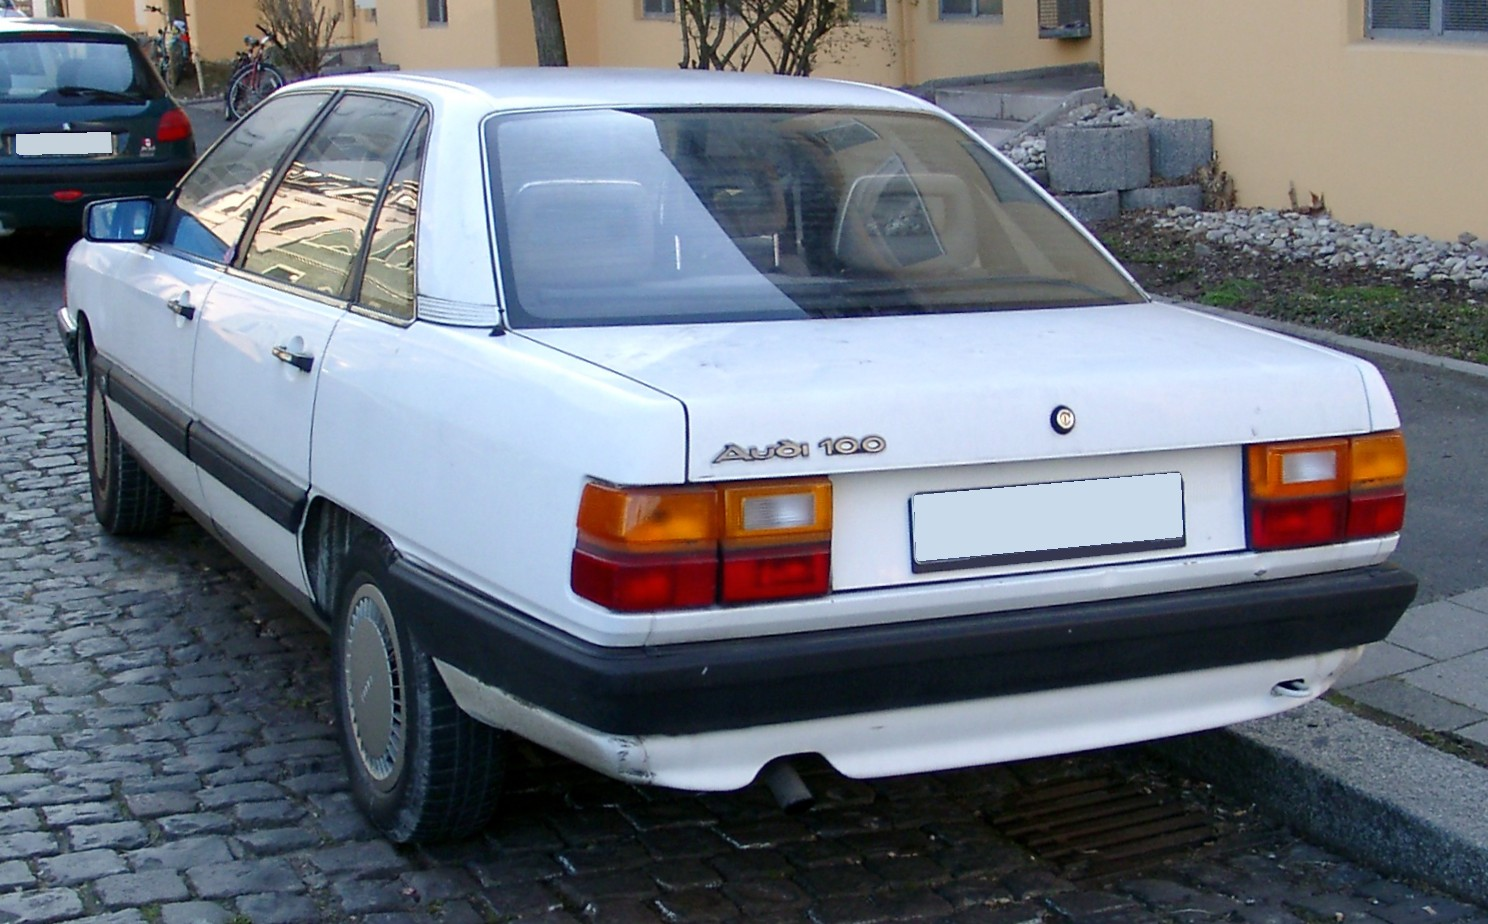 File:Audi 100 C3 rear 20080212.jpg - Wikimedia Commons